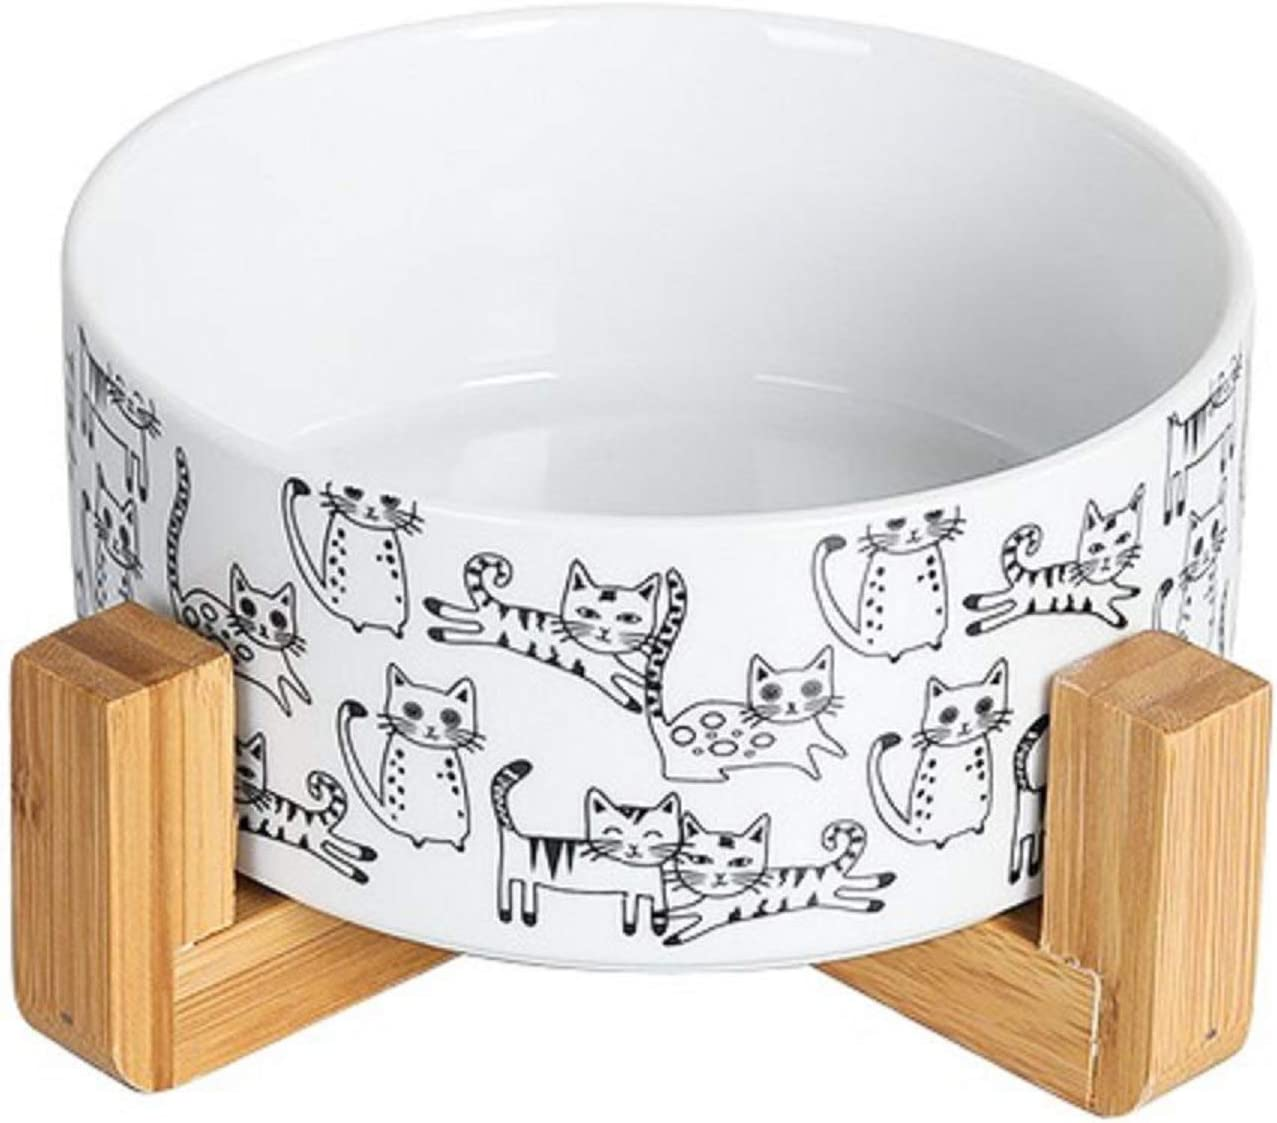 Ceramic Cat Water Bowl Feeder - Raised Cat Food Dish with Wood Stand,Elevated Cat Bowl No Spill,Ceramic Pet Bowls for Cats or Dogs,Dishwasher Safe ,28 Ounces(White)